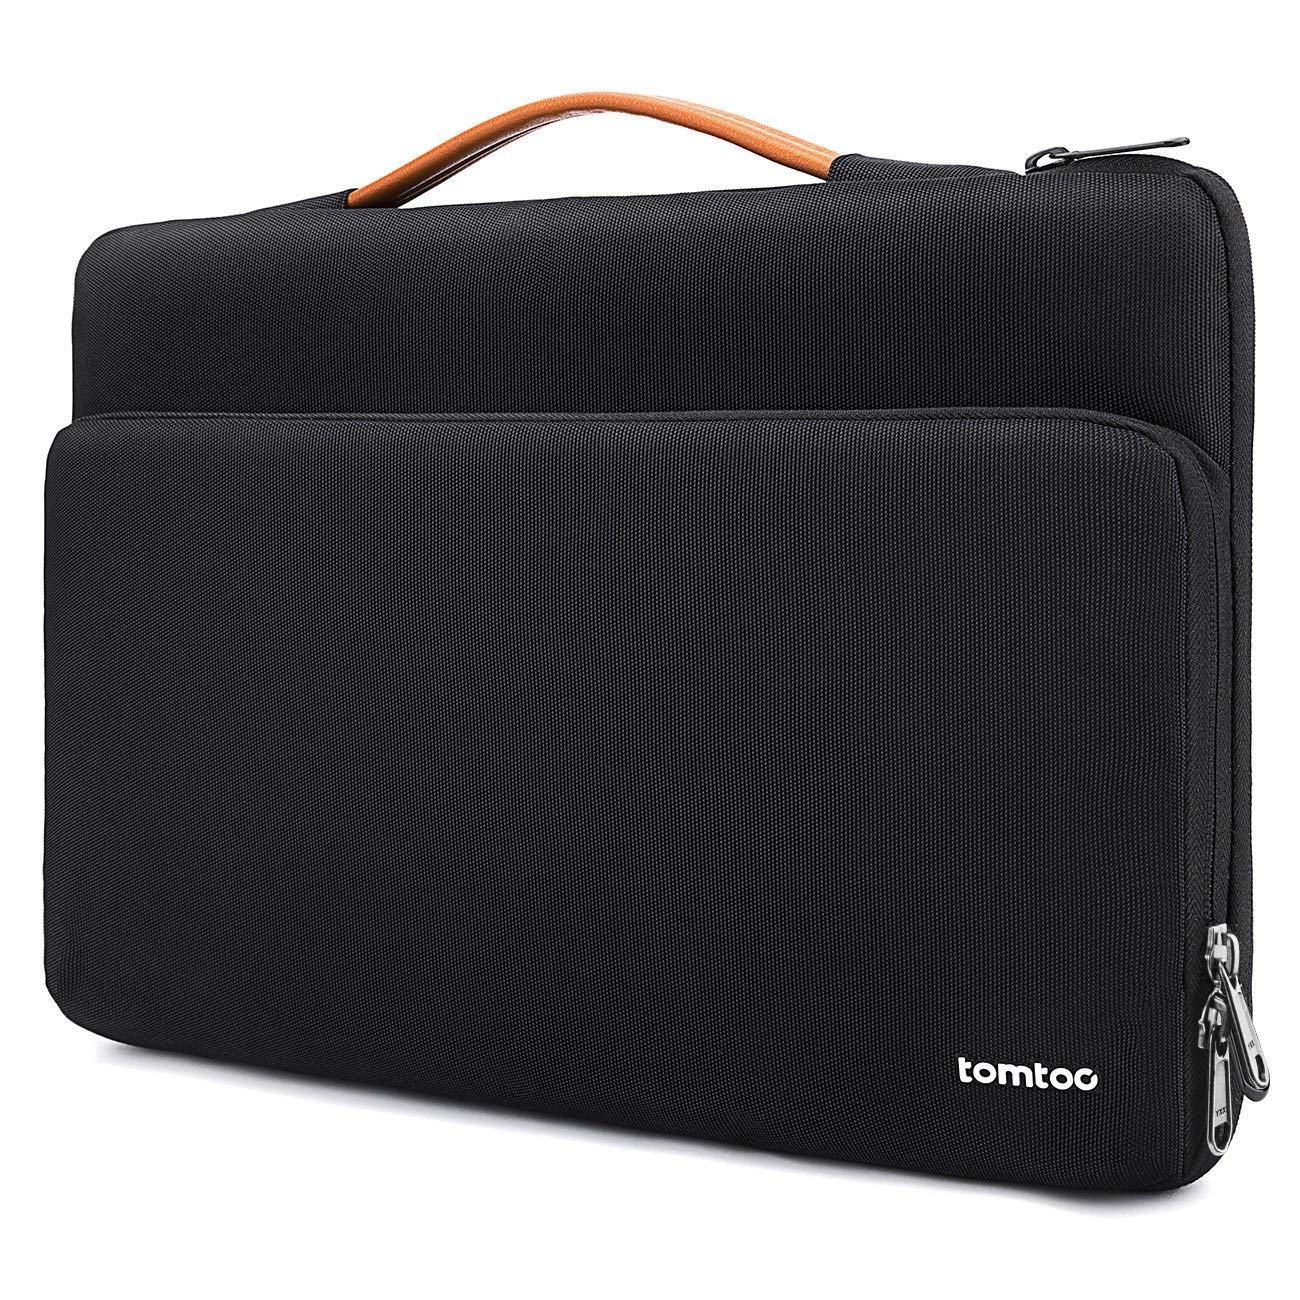 tomtoc 360 Protective Laptop Carrying Case for 15.6 Inch Acer Aspire 5 Slim Laptop, 15.6 HP Pavilion, 15.6 Inch ASUS ROG Zephyrus and More Dell Asus ThinkPad 15 Inch Laptop Notebook